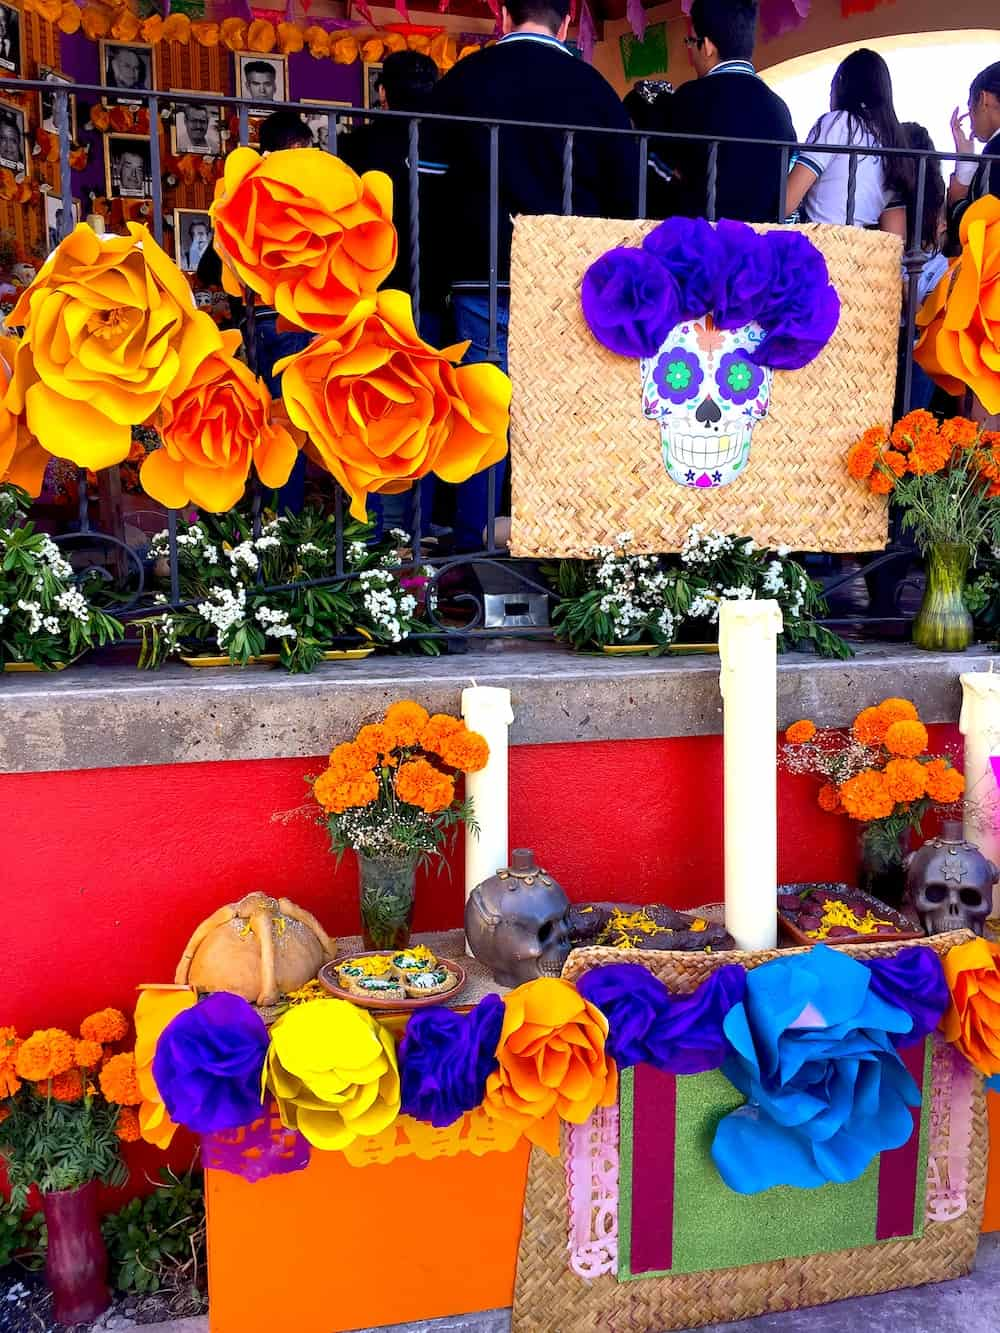 Paper flowers and marigolds decorate a Day of the Dead Altar.